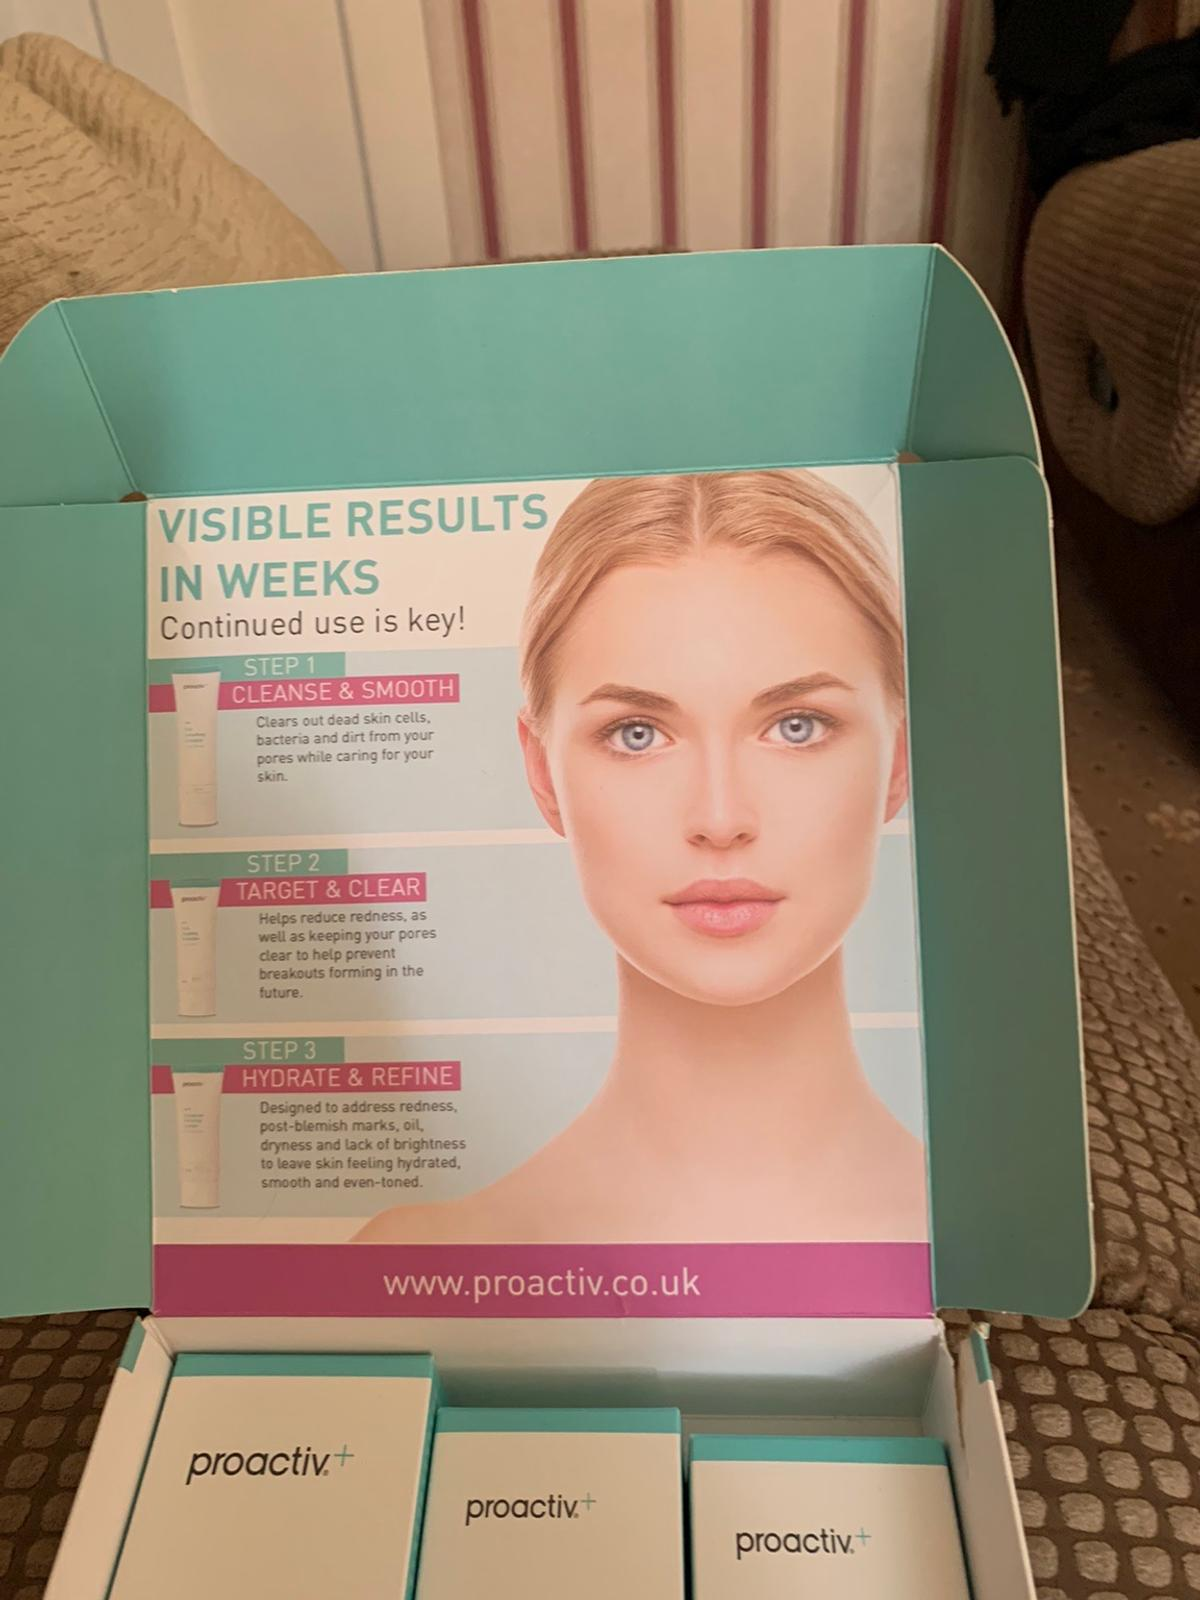 Proactive + 3 step clear skin system , helps clear and prevents pimples, blemishes and breakouts, all 3 items have never been used and has plastic cover on all three items